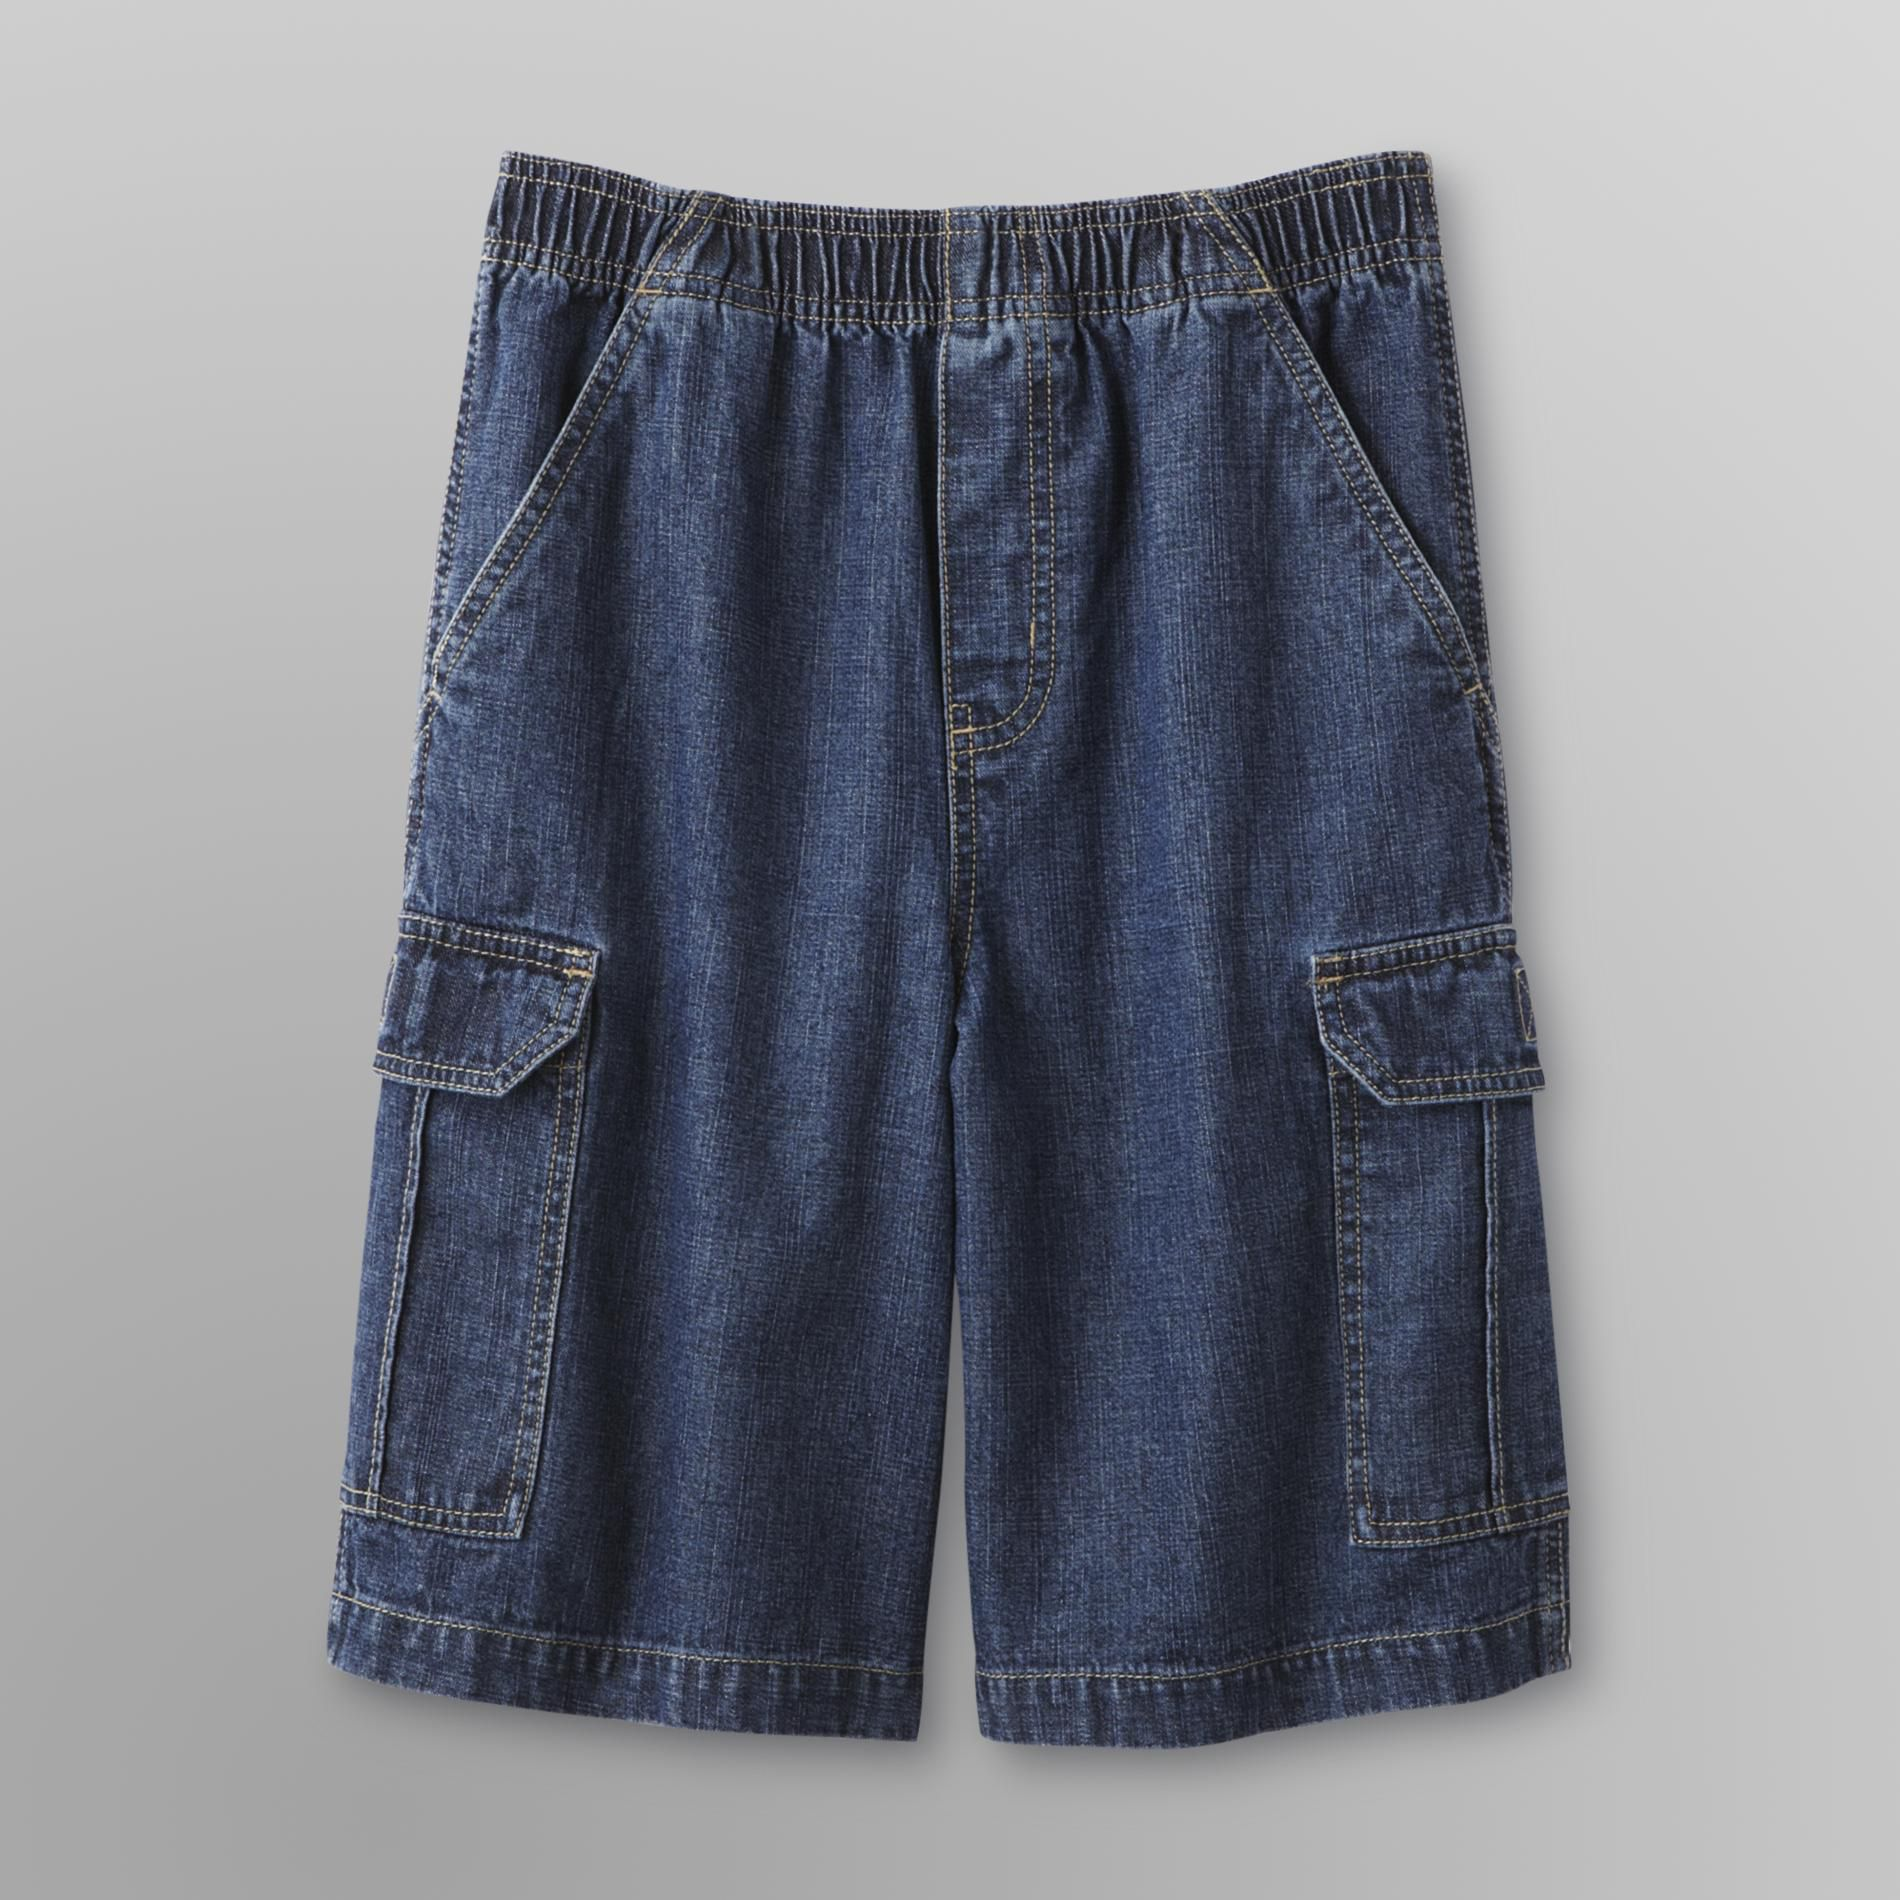 Canyon River Blues  Boy's Denim Cargo Shorts